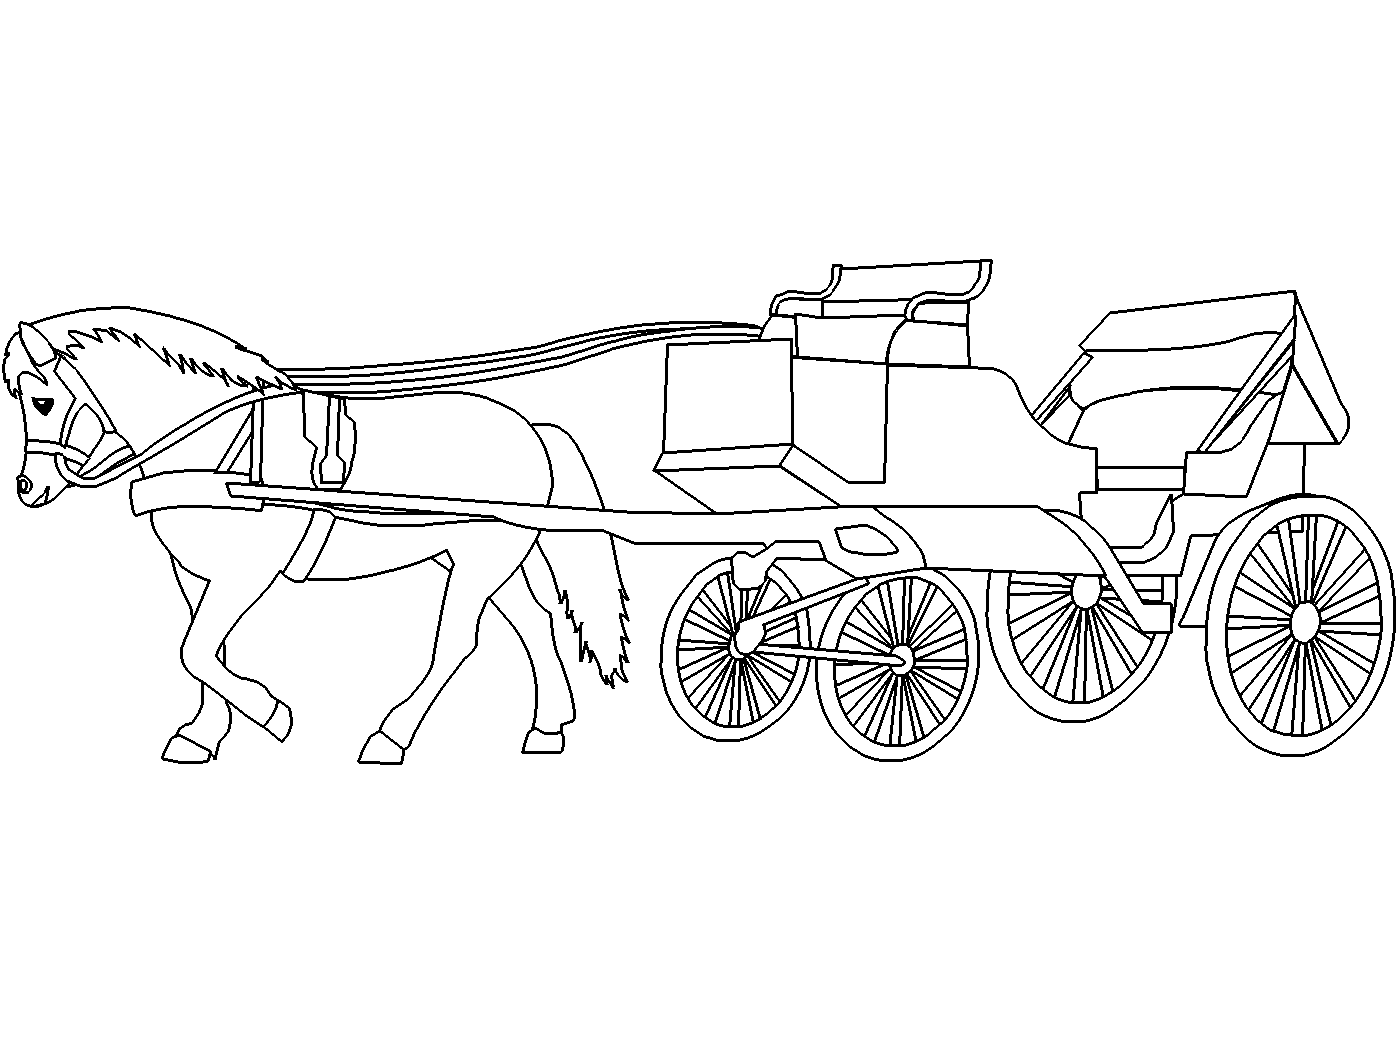 horse and carriage coloring pages horse and carriage coloring pages free coloringpages2019 carriage horse coloring and pages